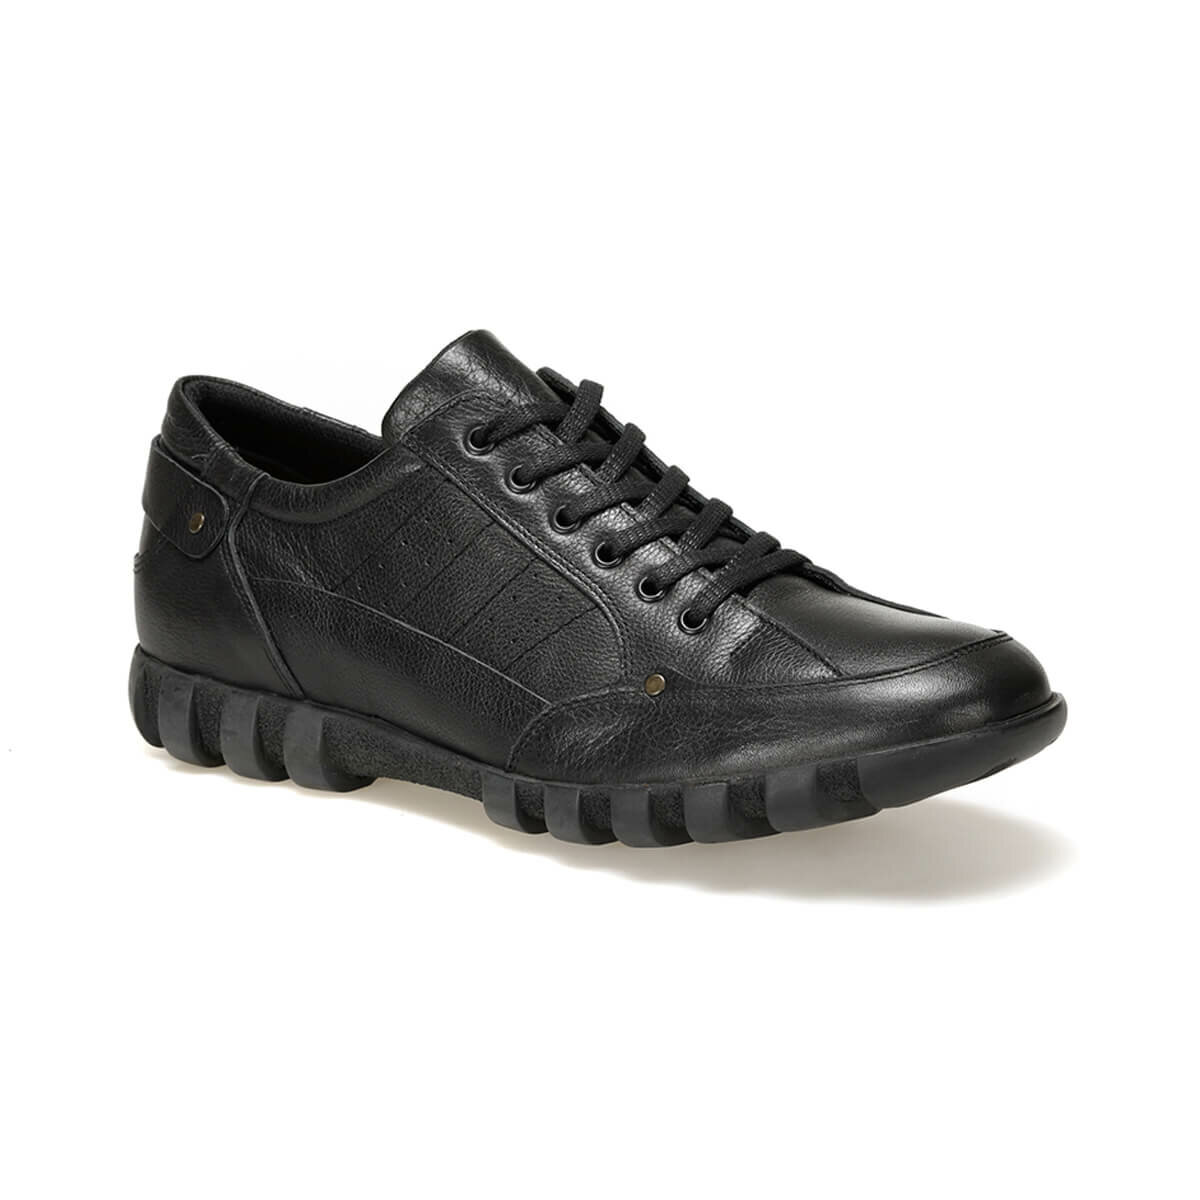 FLO 703 C 19 Black Male Shoes Oxide